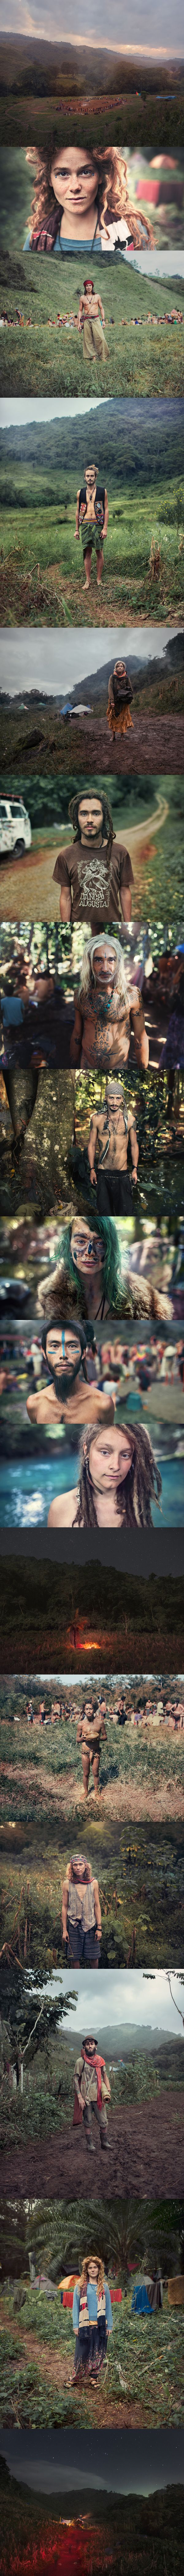 Rainbow Gathering 2012-2013  By Benoit Paillé---> i was at this one!